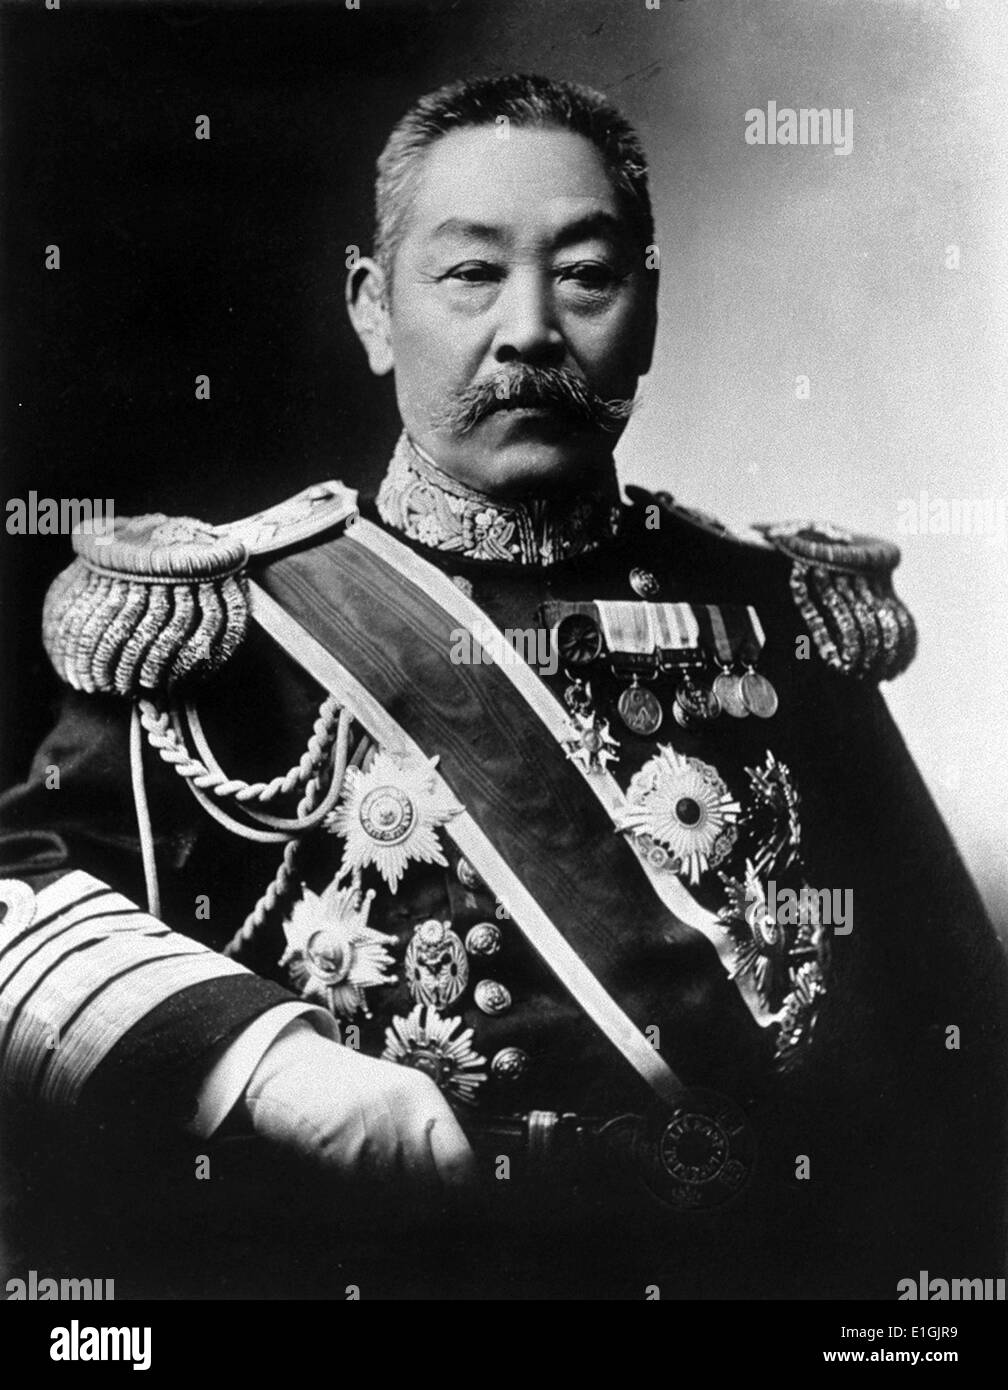 Marshal Admiral Count Itō Sukeyuki; also known as Itō Yūkō?) (20 May 1843 – 16 January 1914) was a career officer and admiral - Stock Image